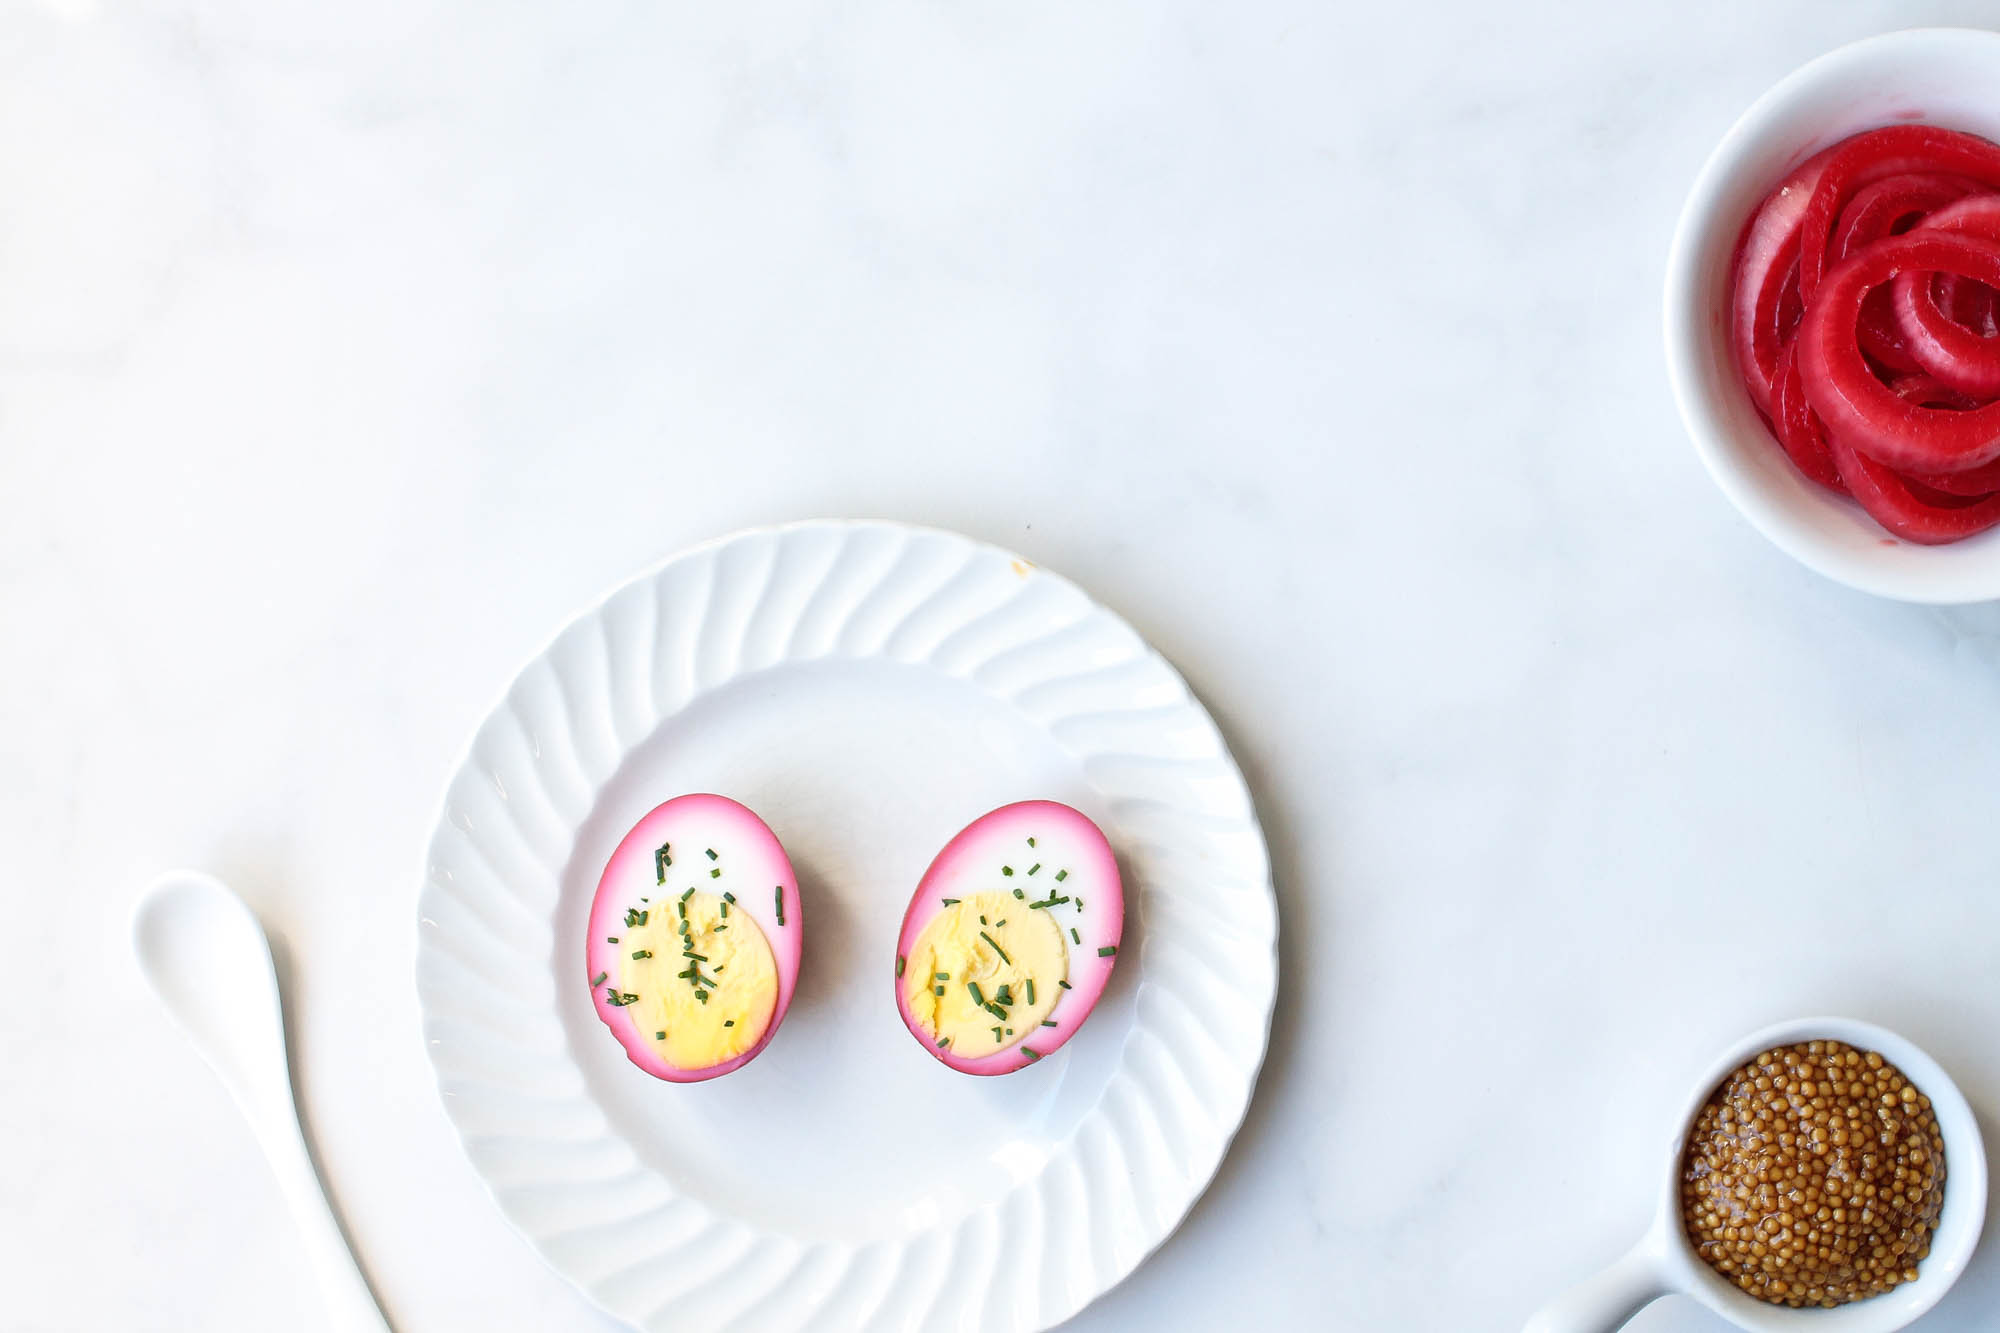 Beet Pickled Eggs + Mustard Caviar || A delicious and simple snack recipe that is perfect for parties or every day meals! Serve pink eggs w/ fresh herbs, chopped vegetables, a nice slice of toast + mayo or yogurt. || creamandhoney.ca